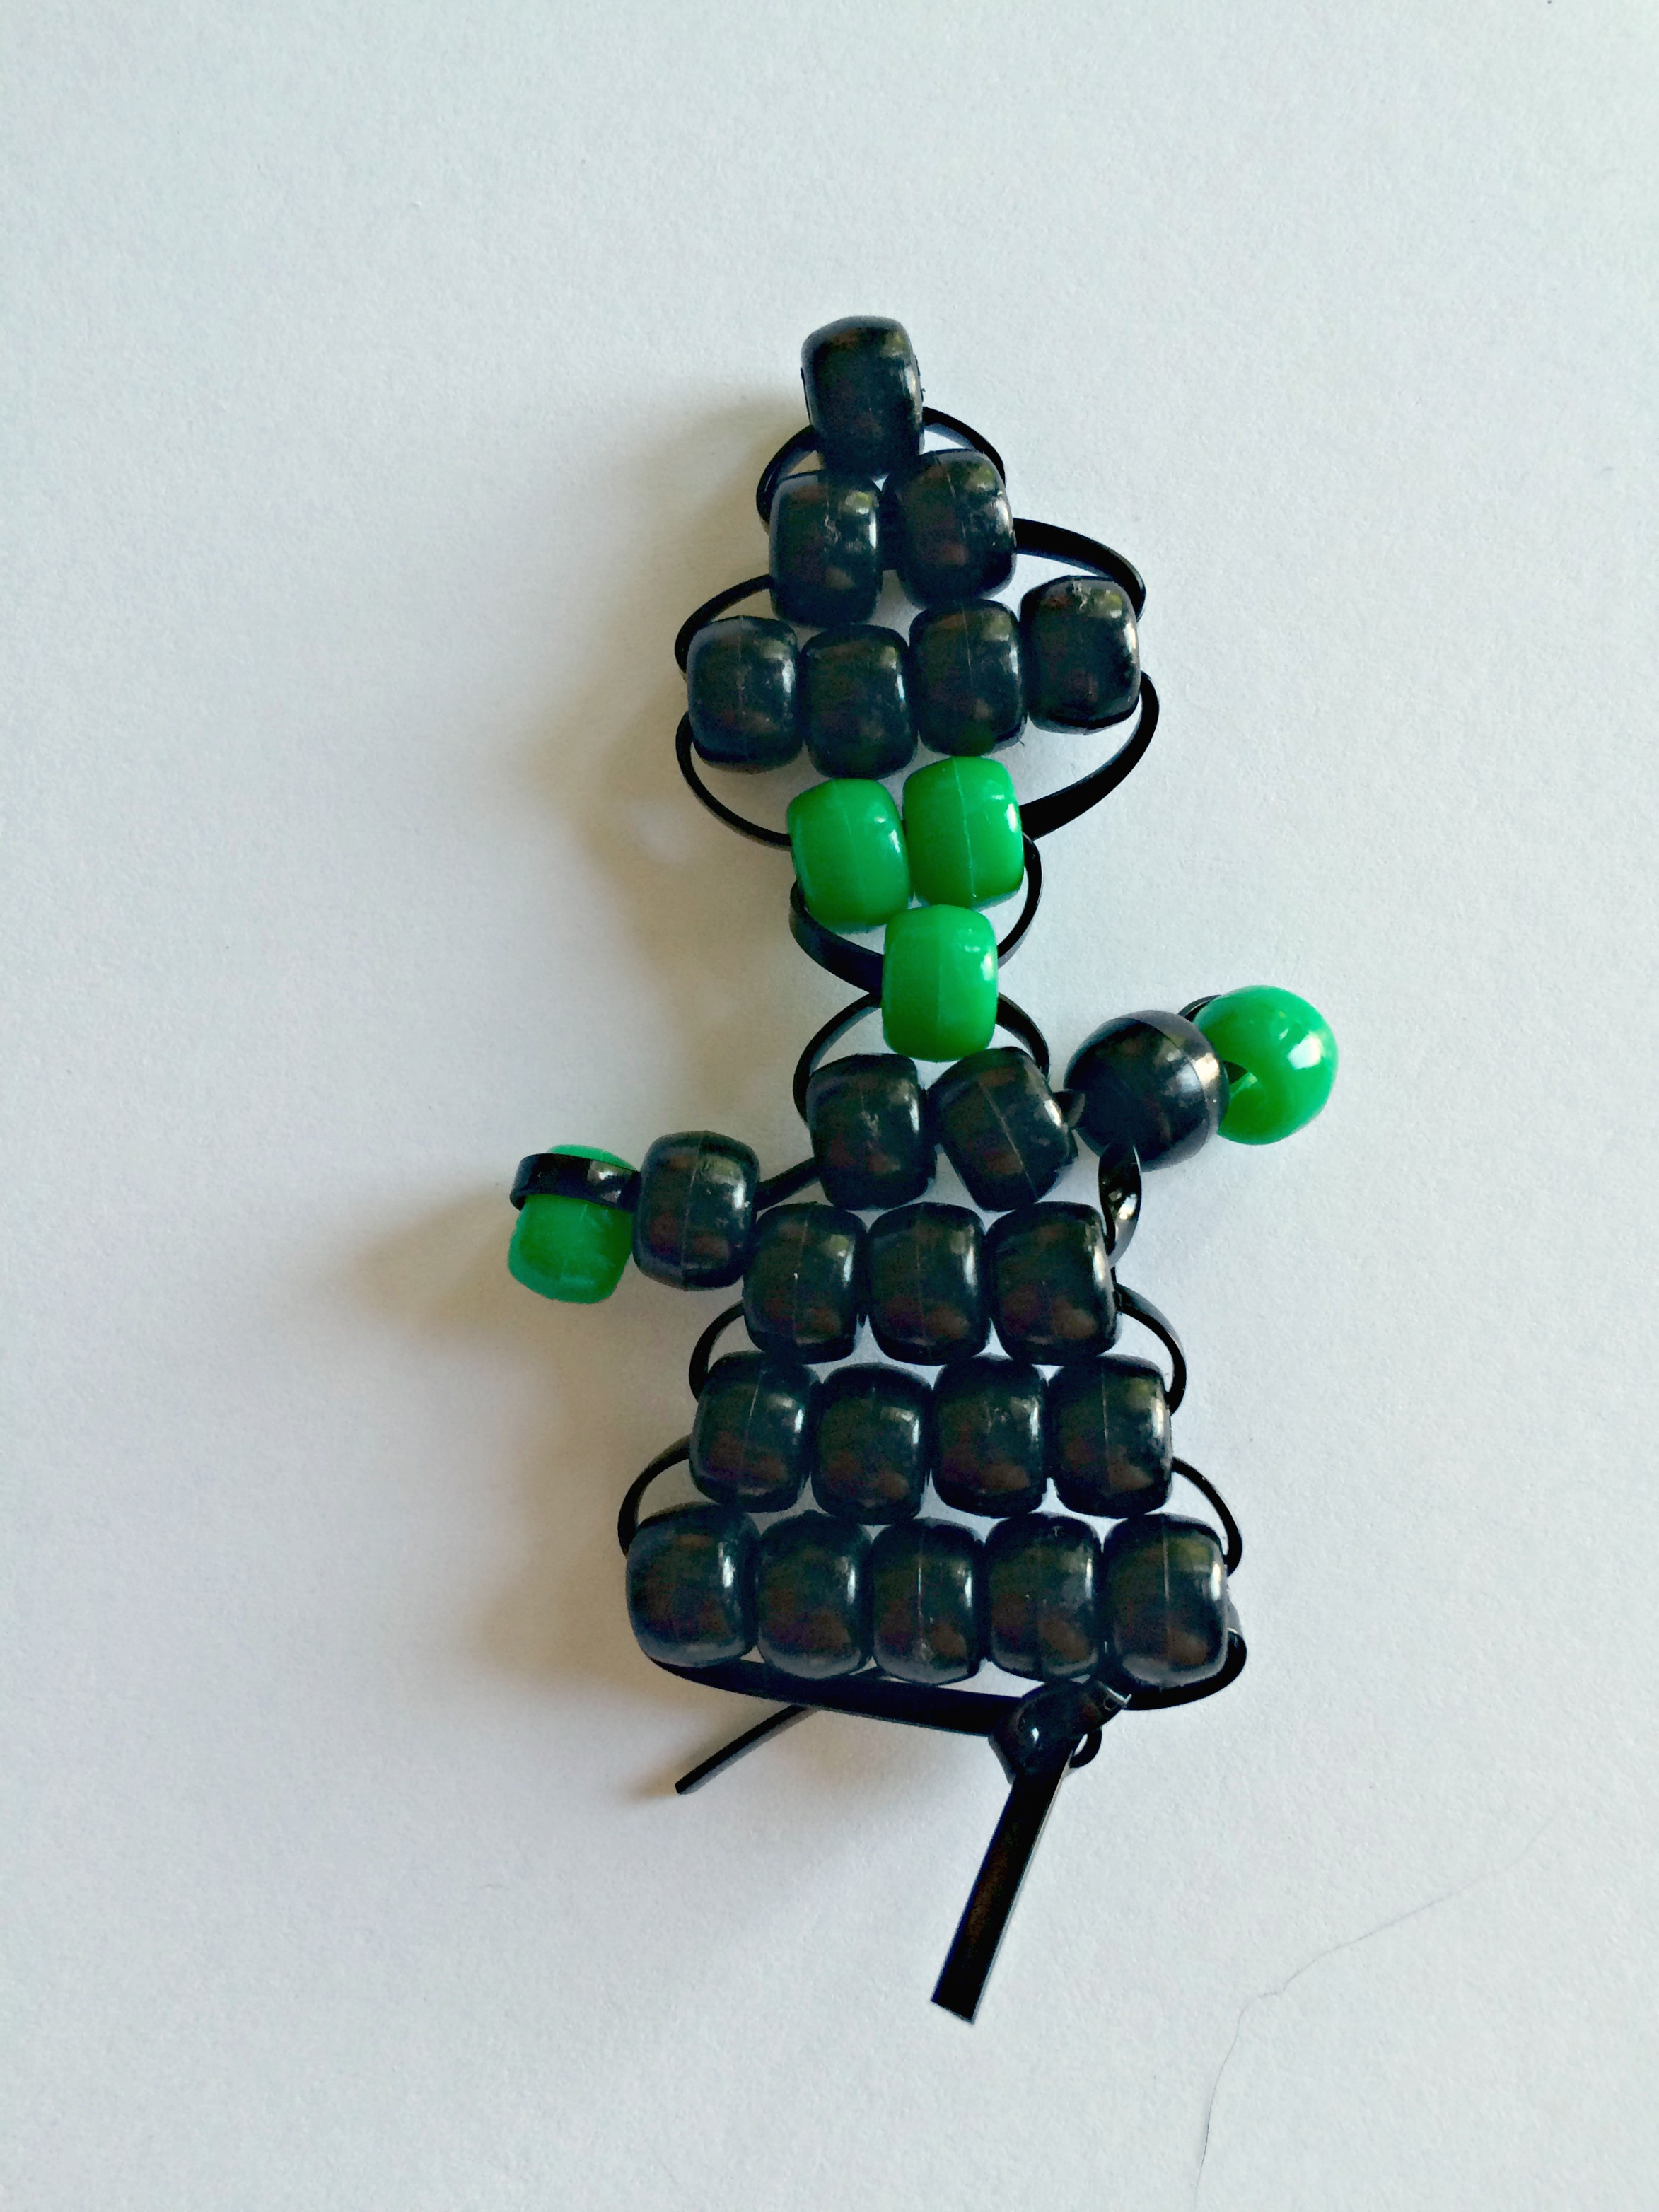 Learn how to make this witch pony bead beadie buddie for Hallowe'en @ GagenGirls.com